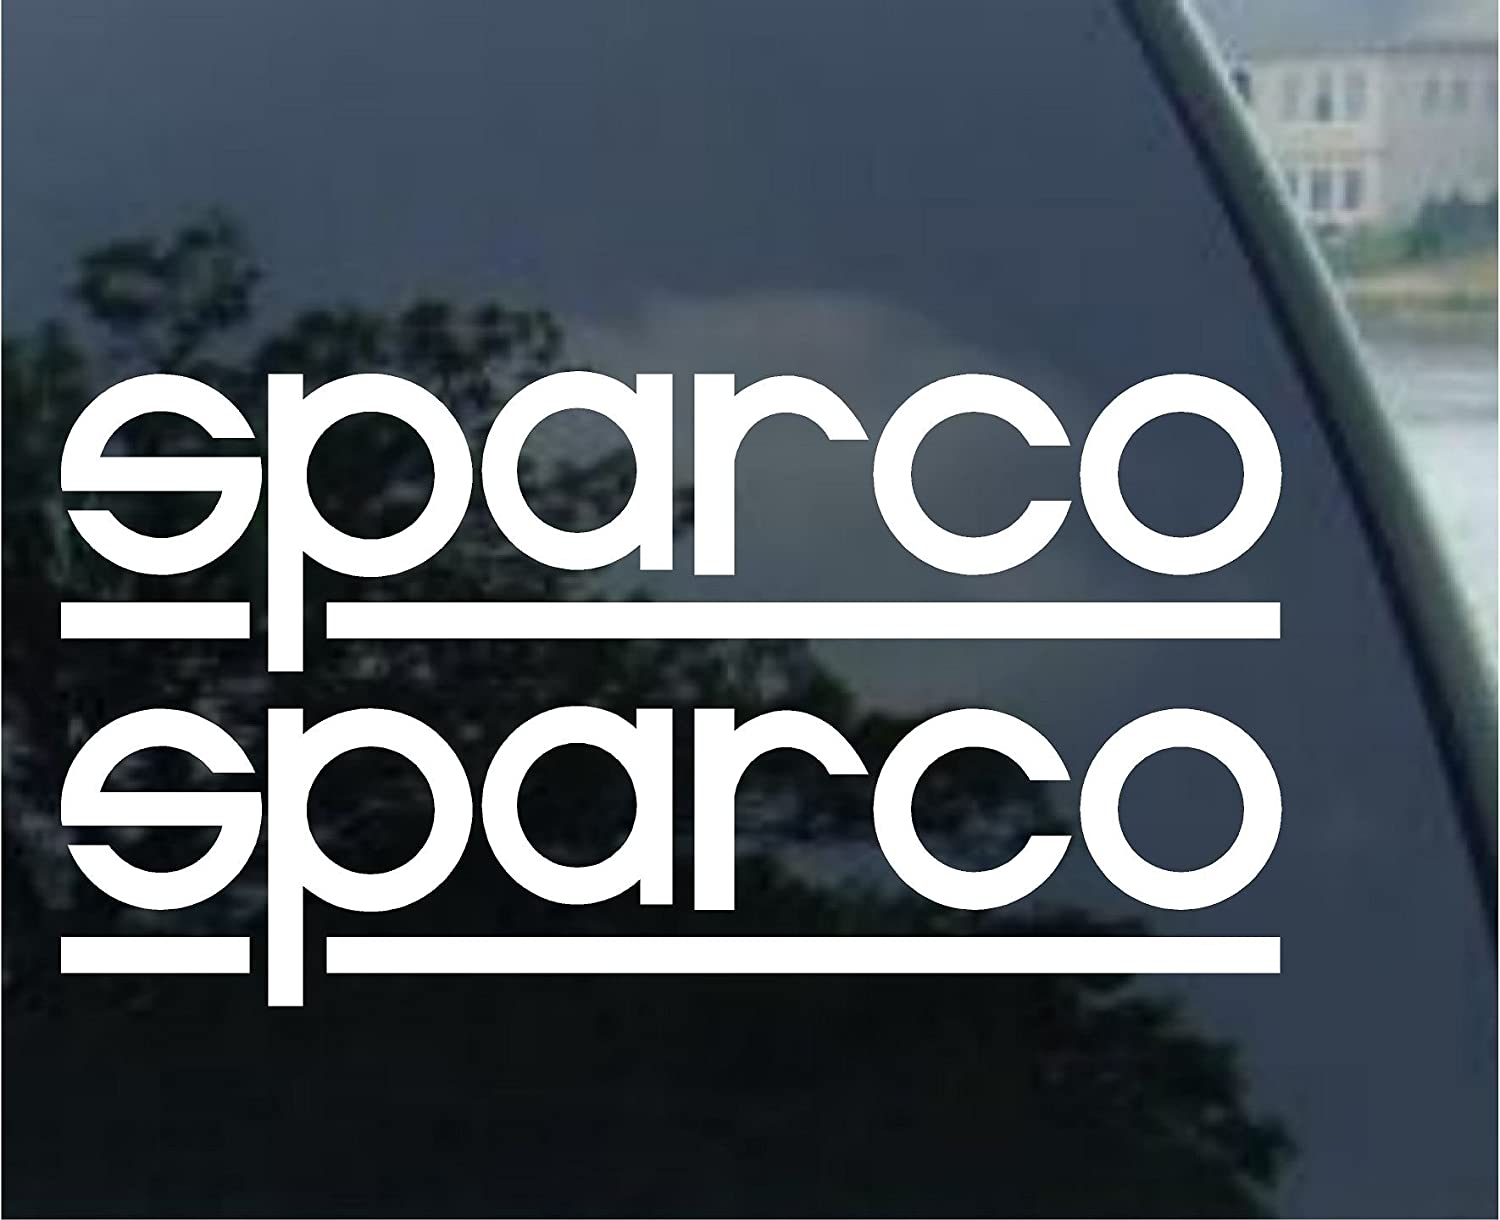 Sparco racing decal sticker new white x 2 amazon ca tools home improvement